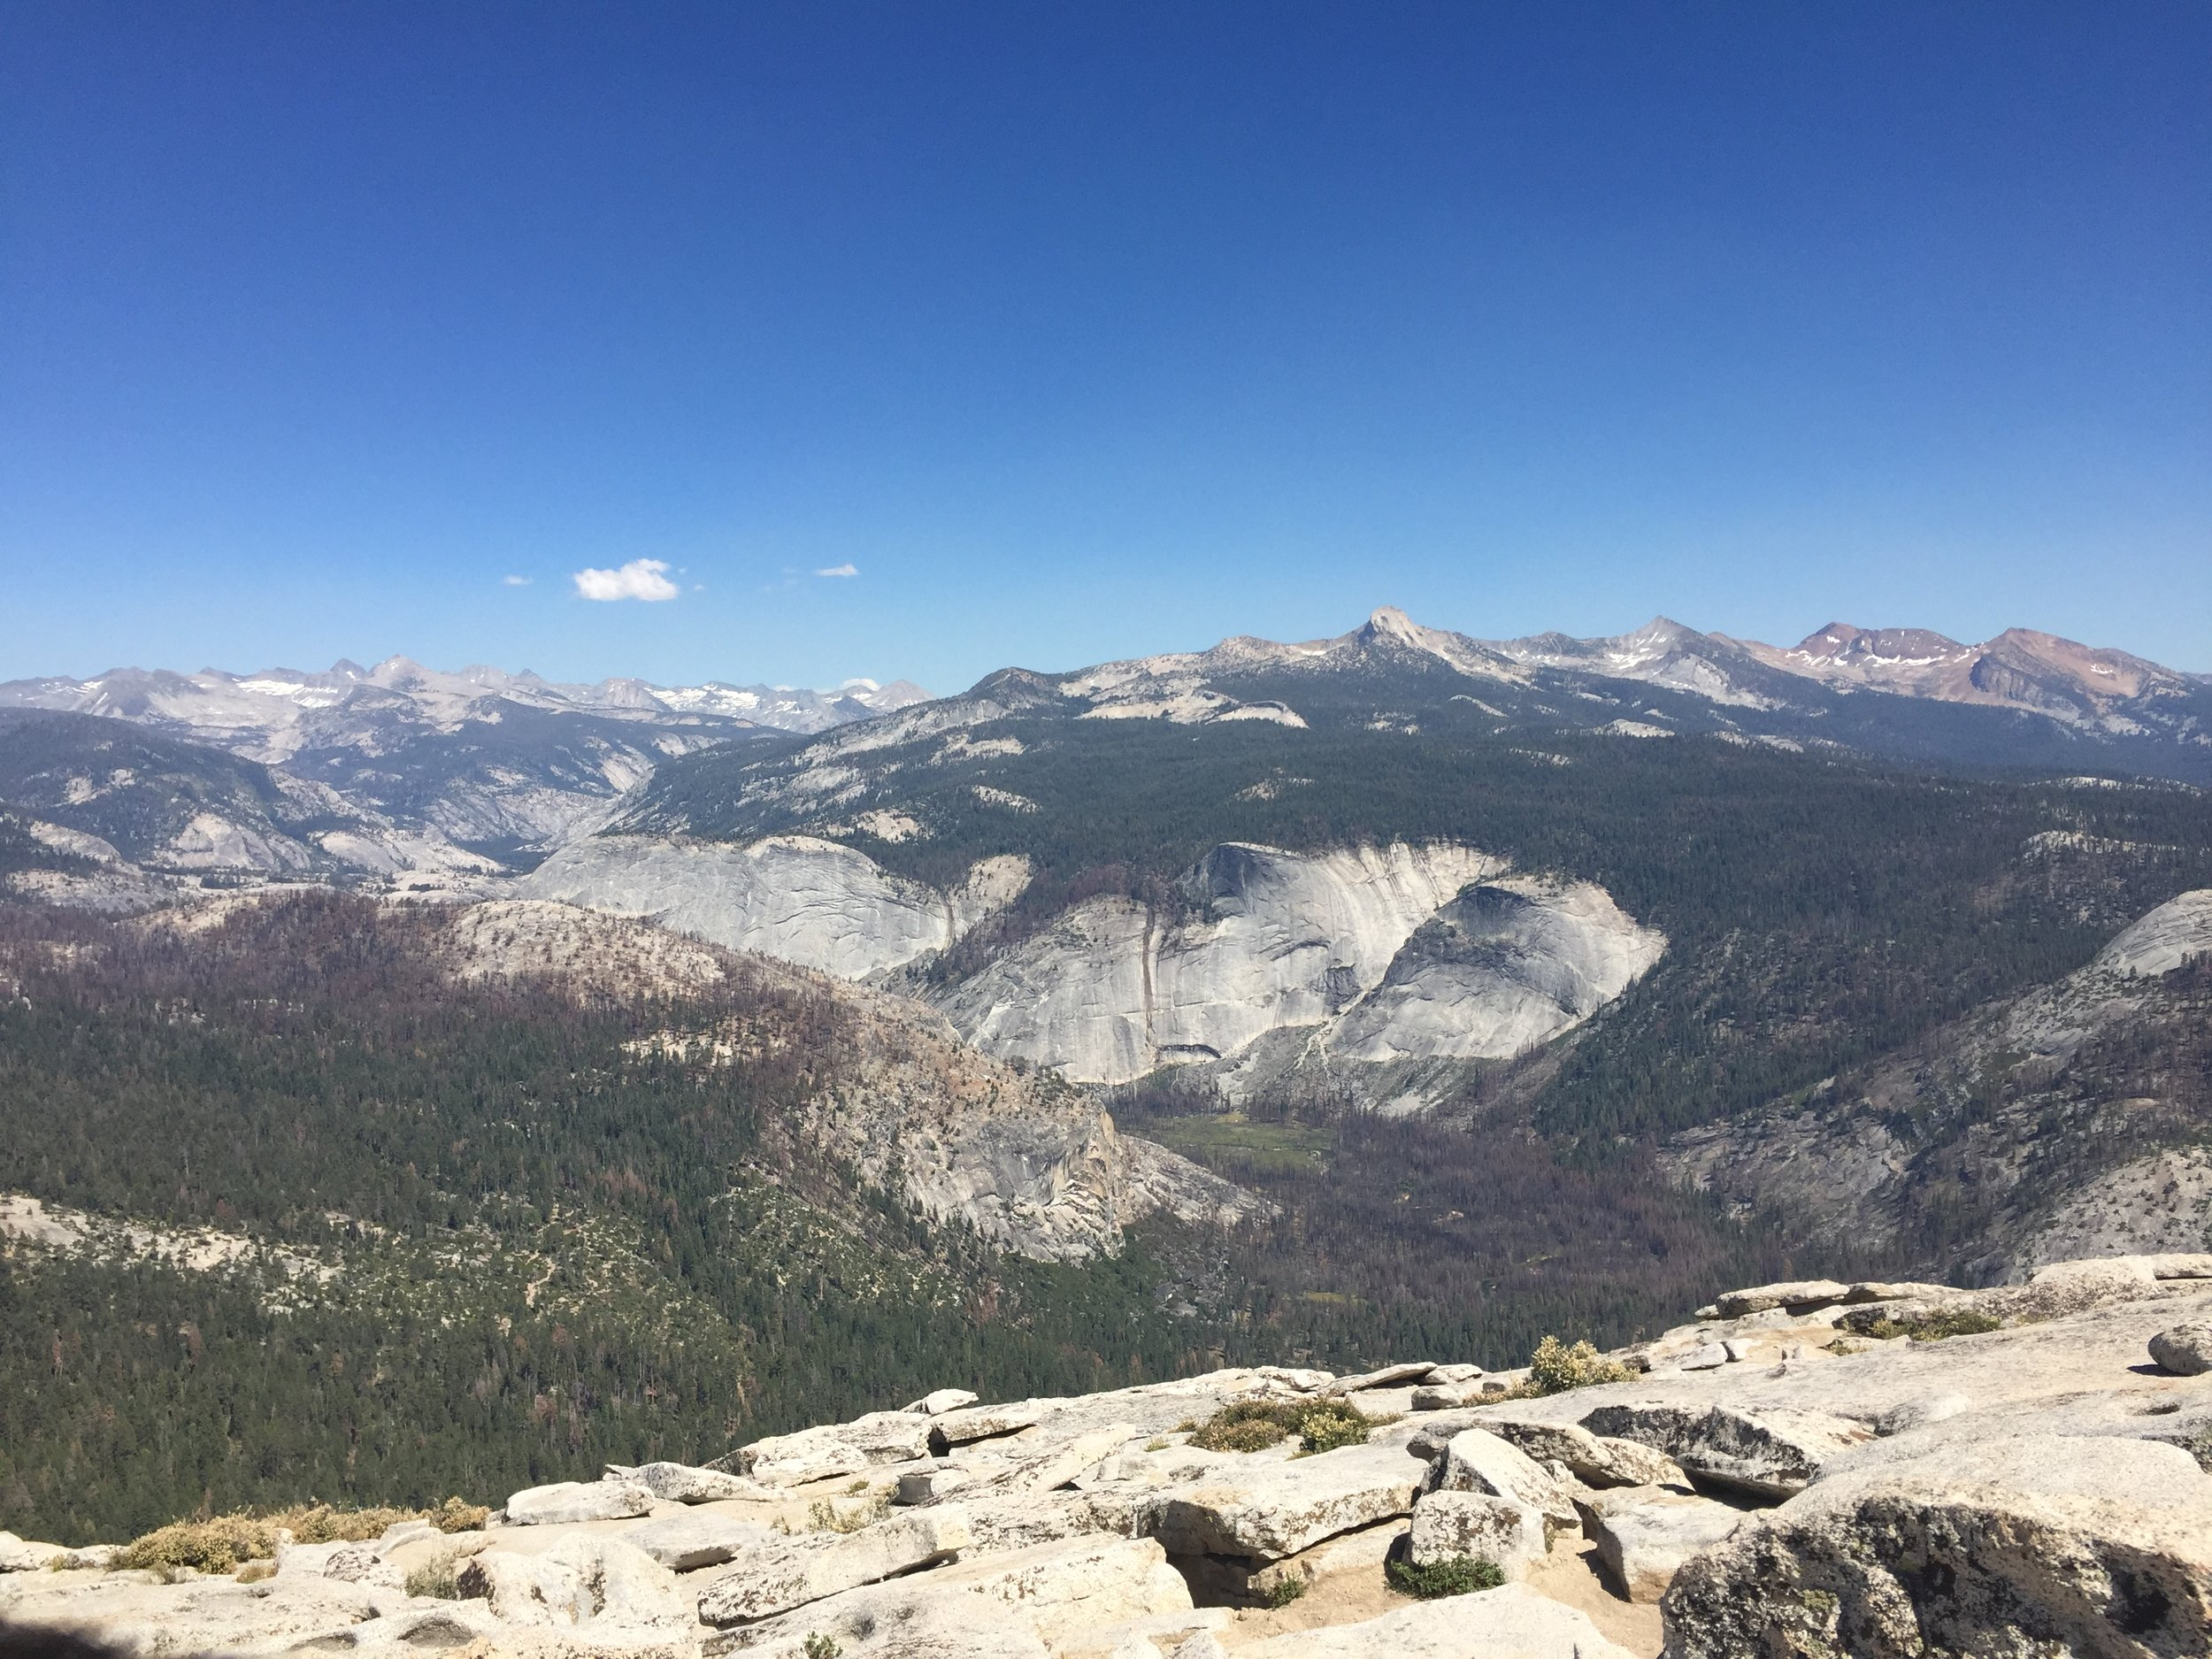 The top of Half Dome - it's even more amazing in person, I promise